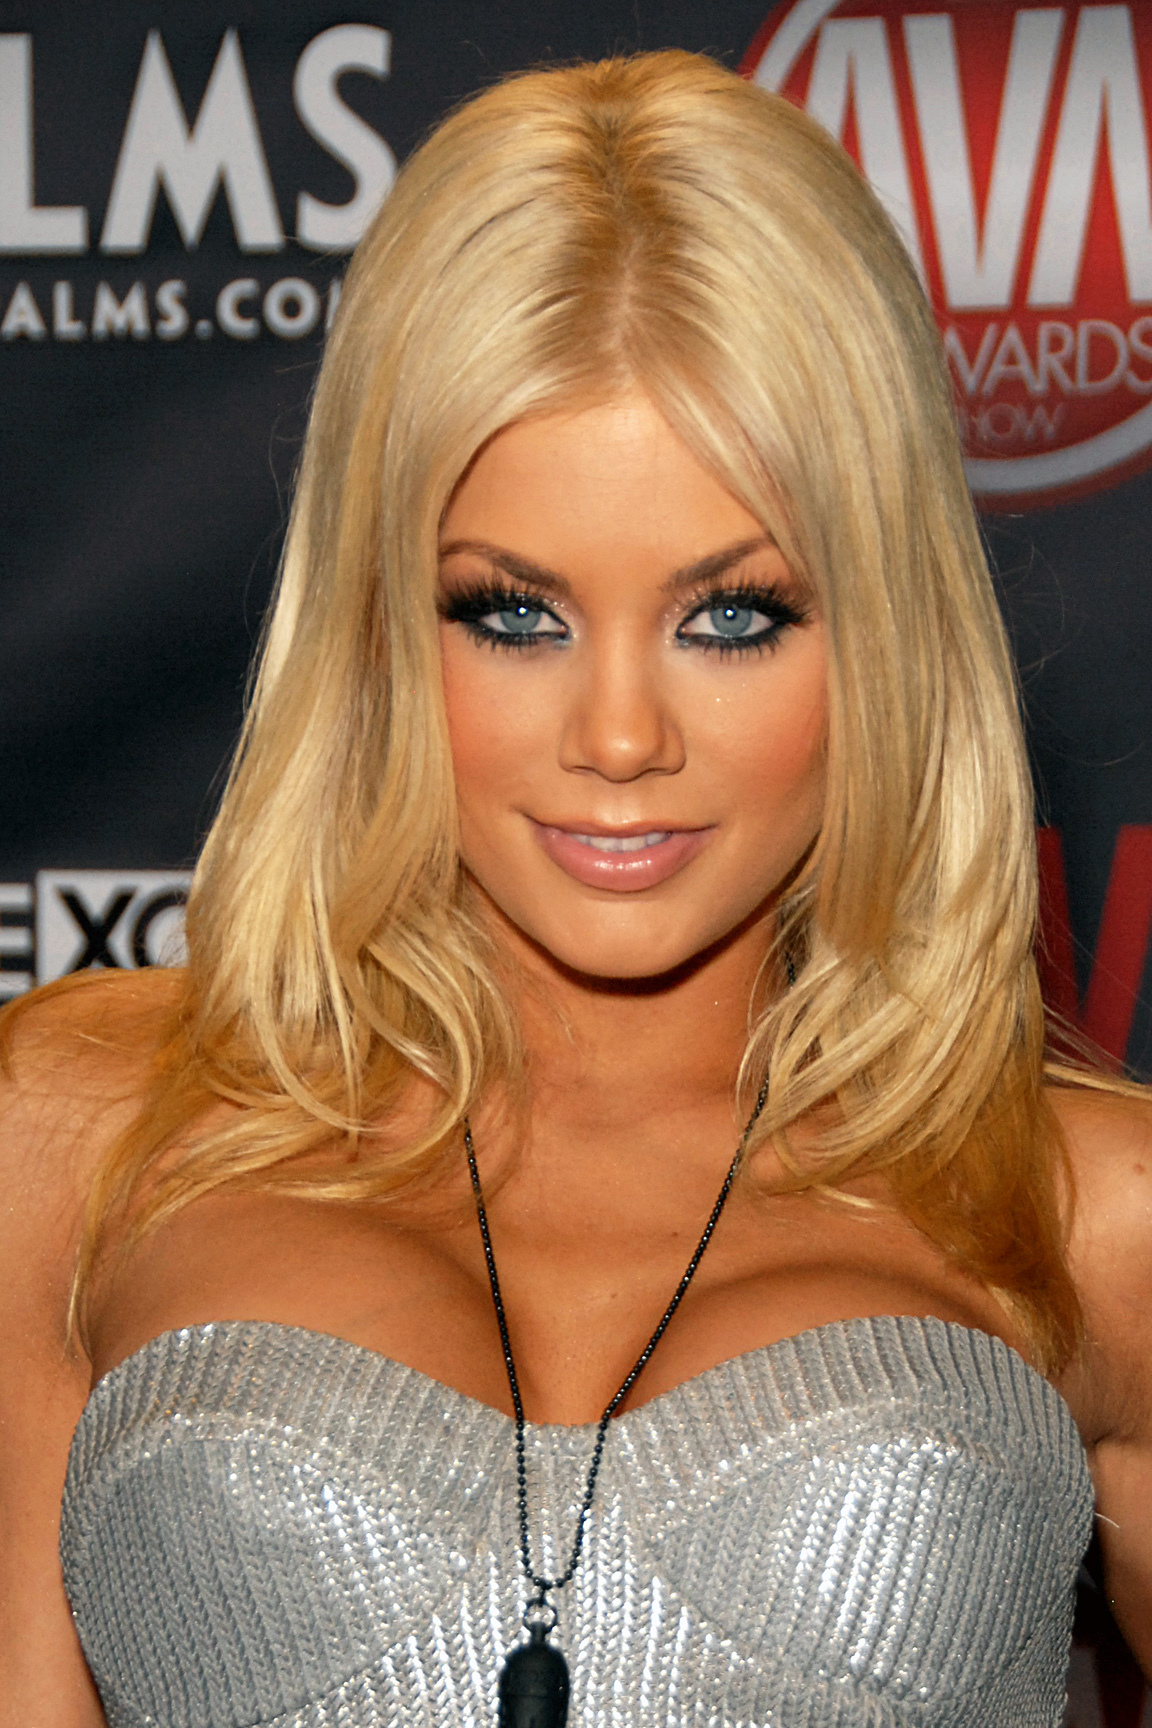 Riley Steele High Quality Wallpapers For Iphone